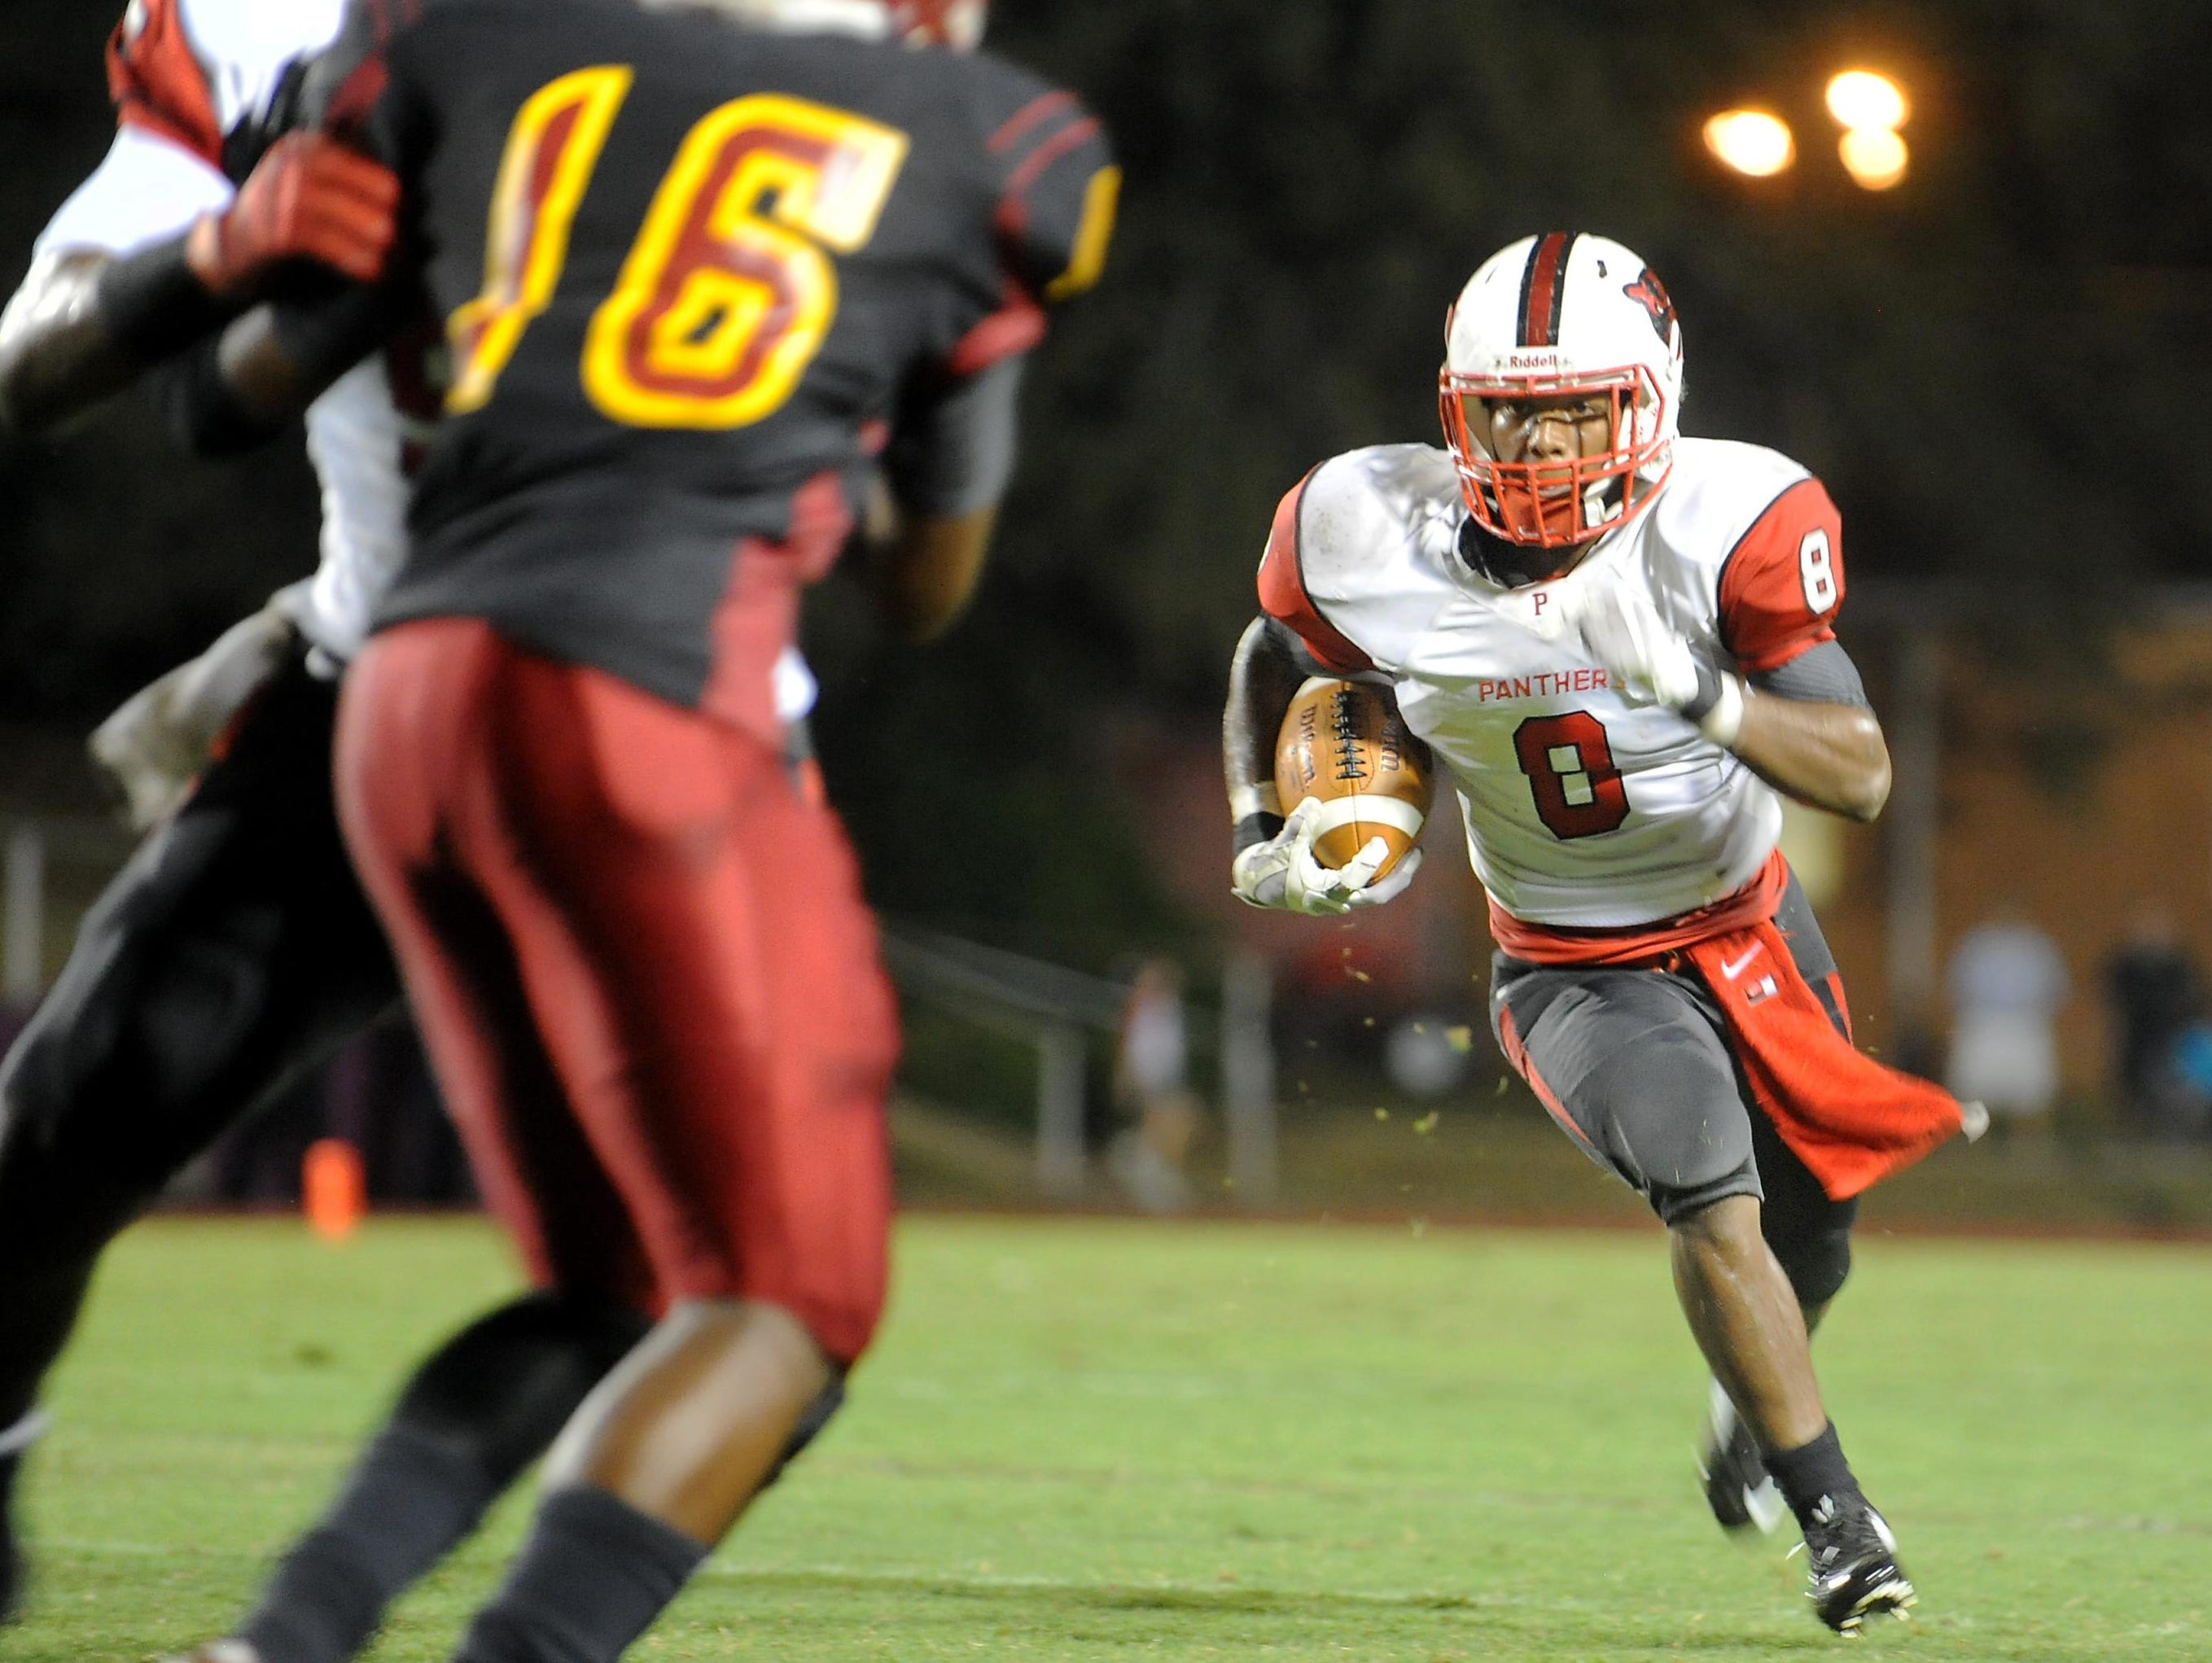 Petal's Stephon Huderson runs the ball Friday night during the Panthers' game at Laurel.